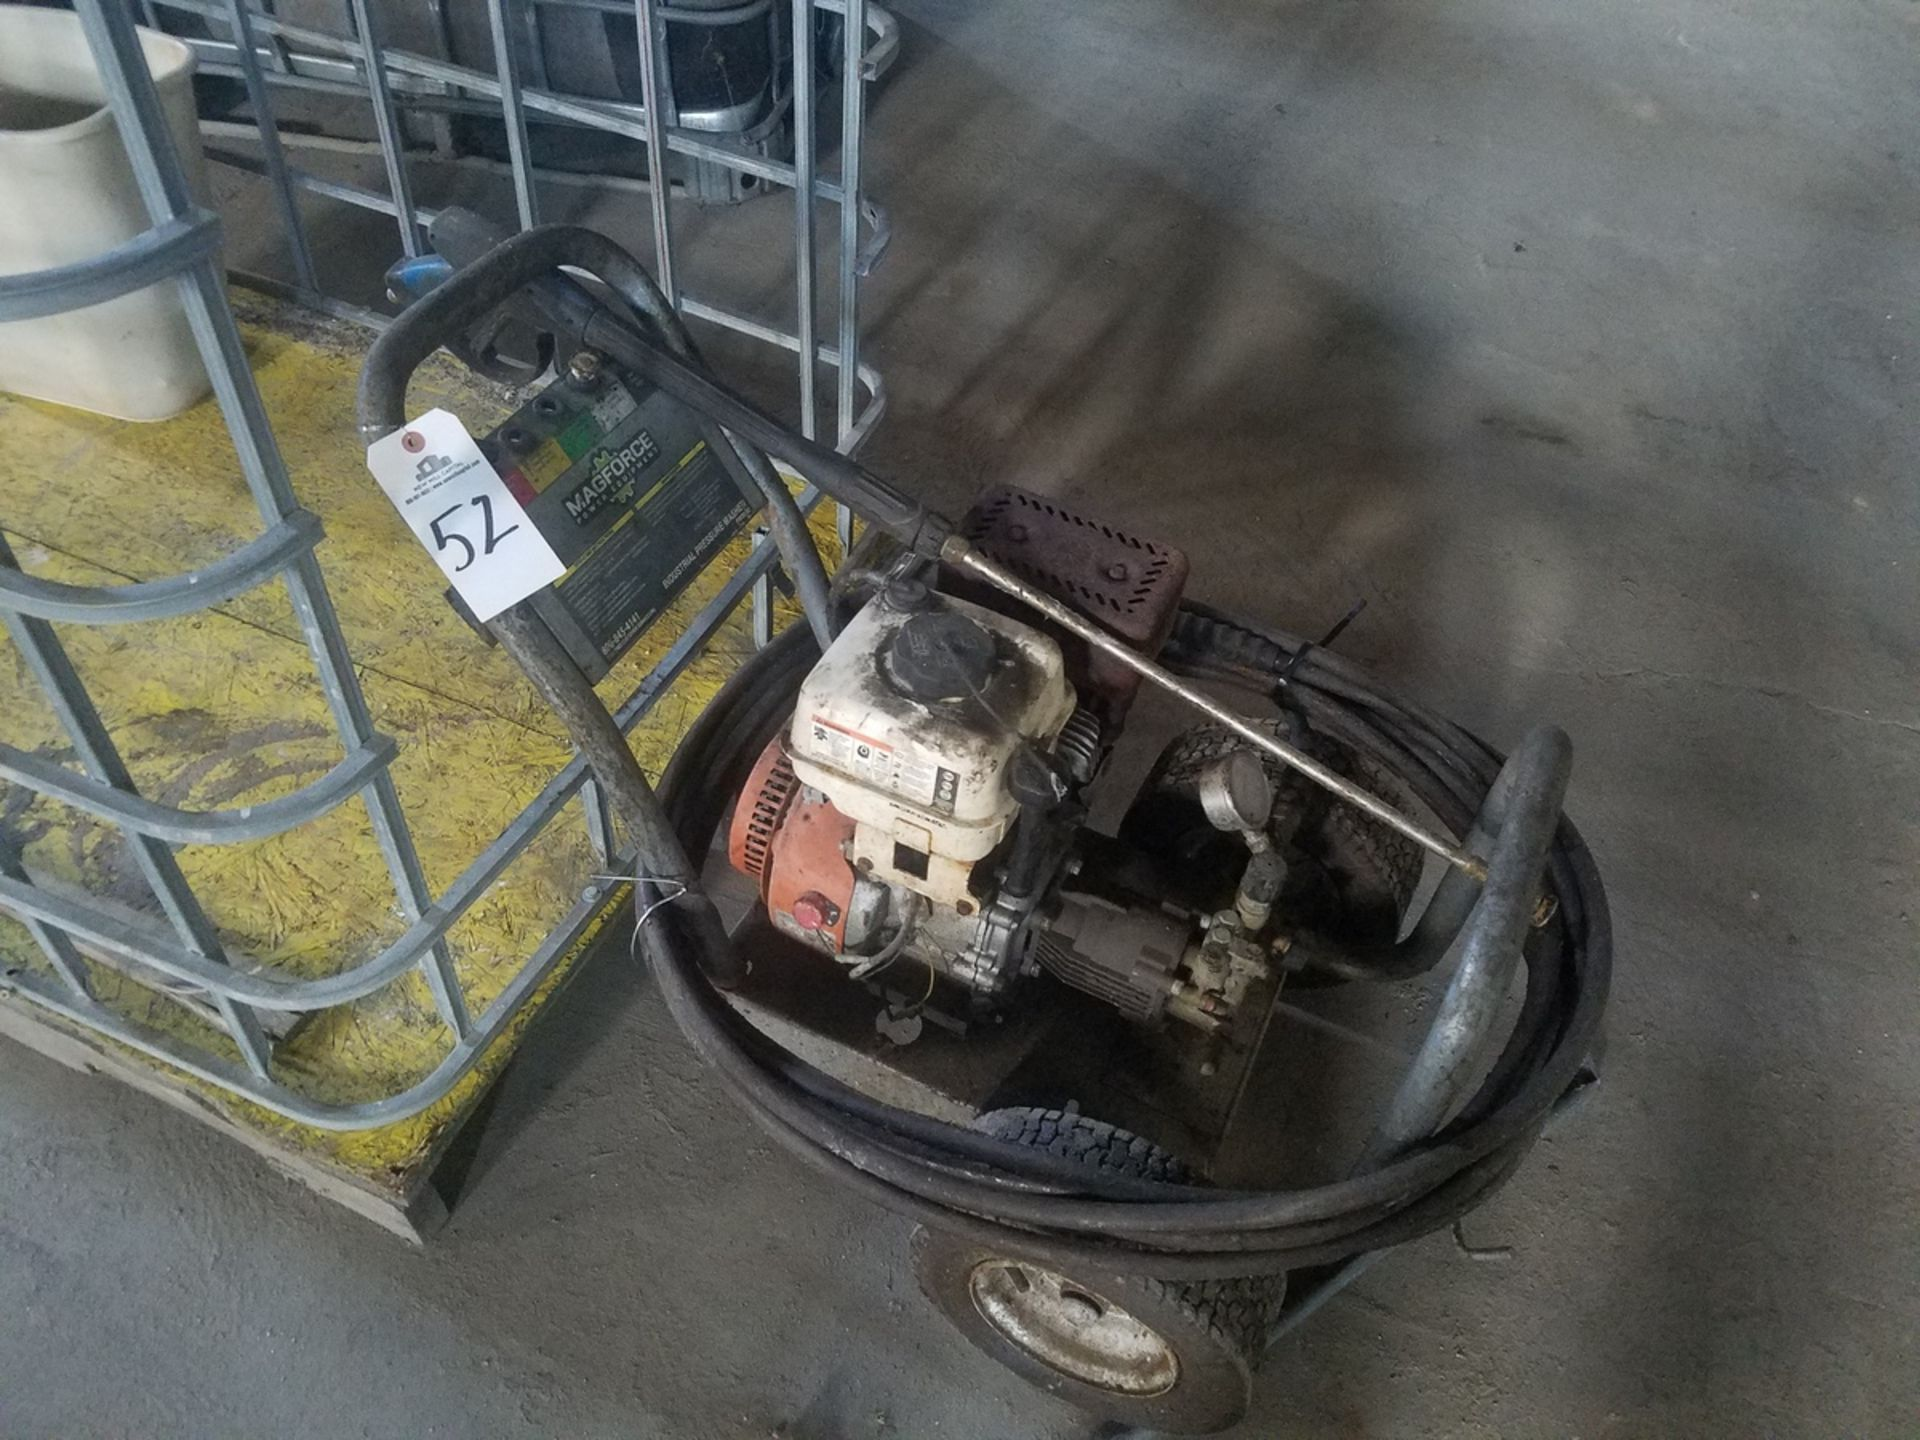 Magforce Industrial Pressure Washer   Rig Fee: $25